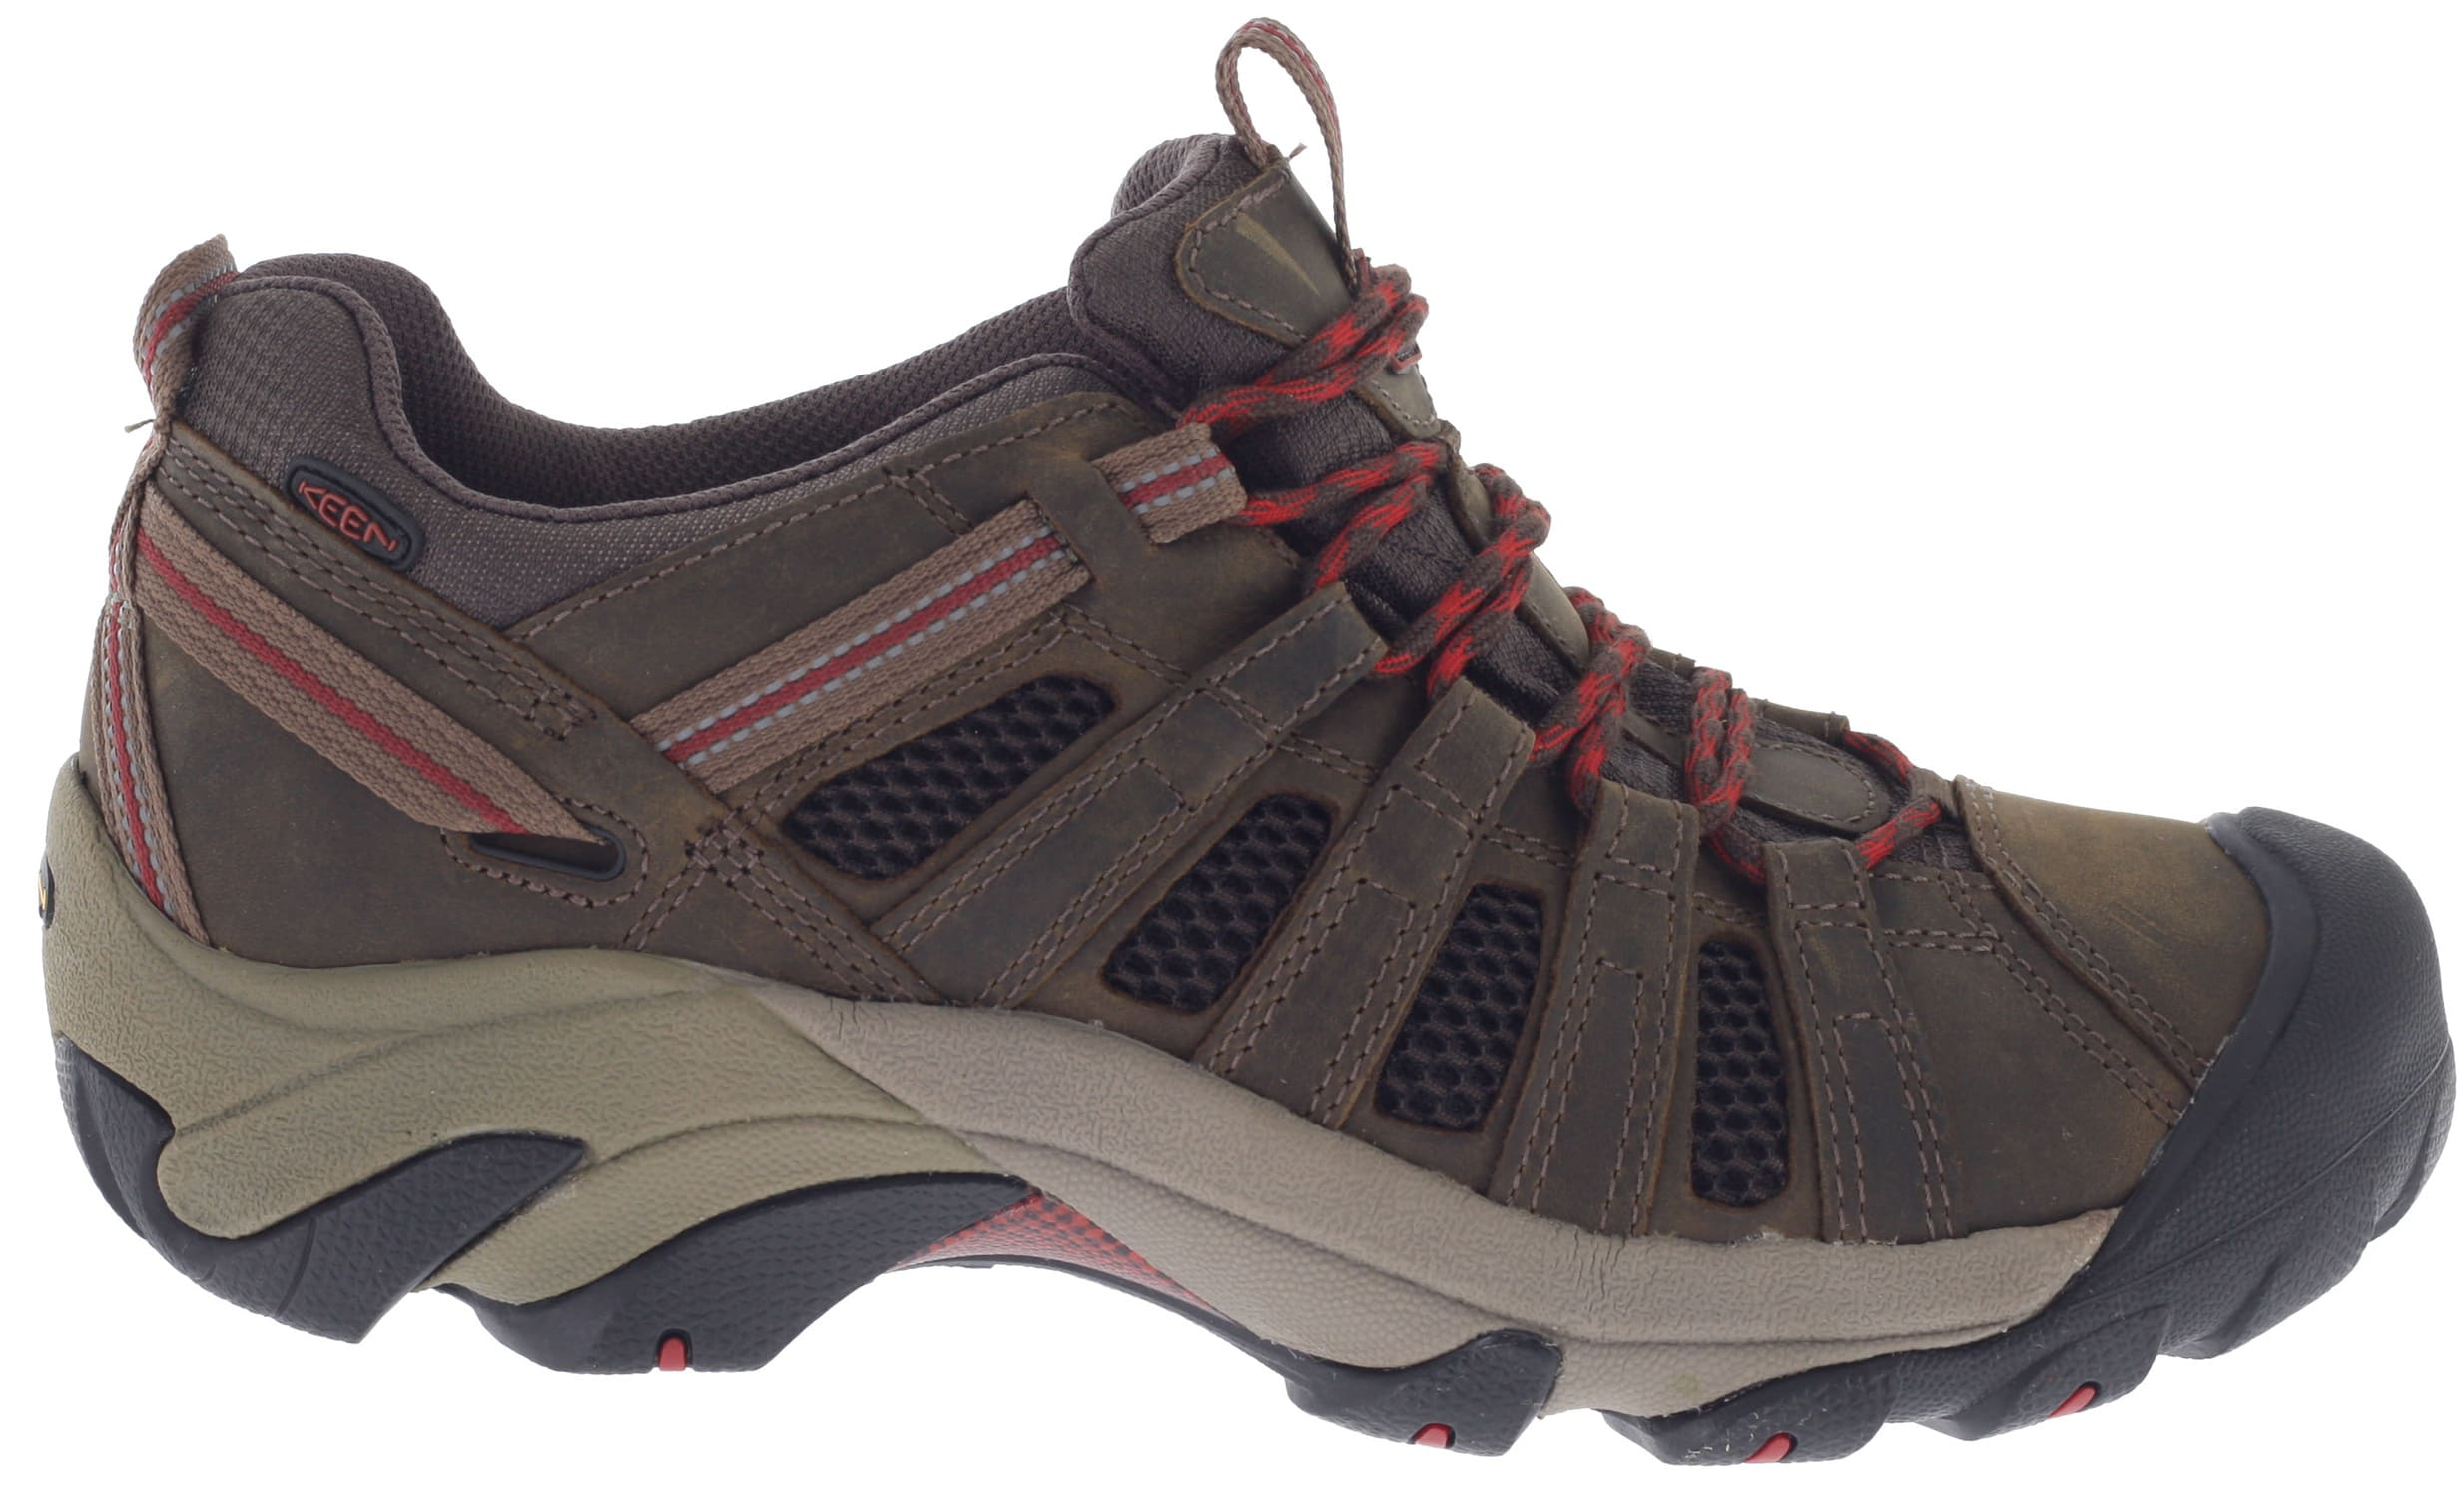 Keen Voyageur Low Hiking Shoes Black Olive/Bossa Nova - Men&#39;s - GEAR.